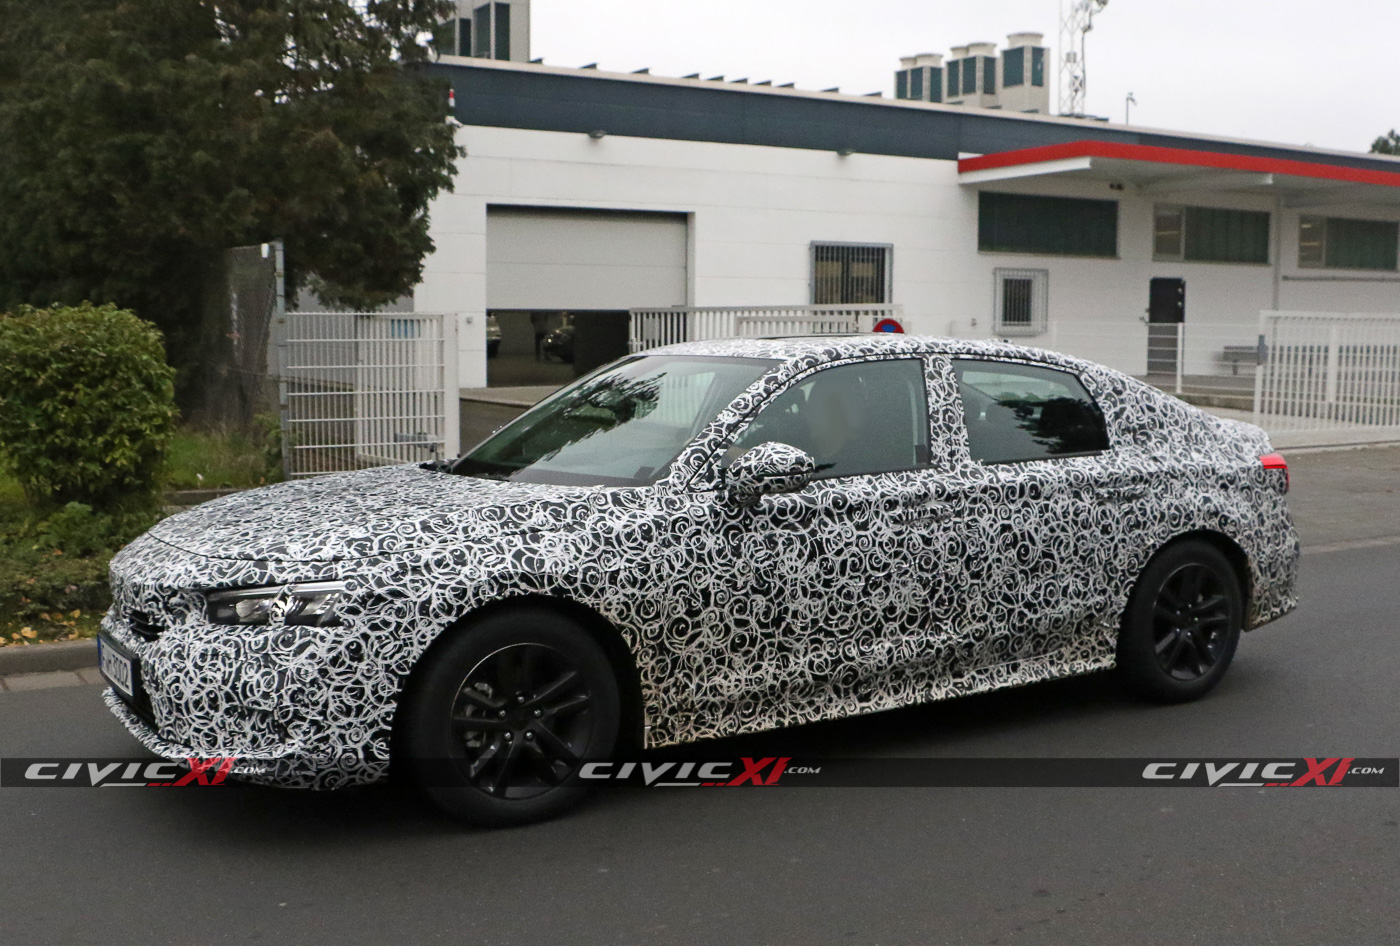 2022-Civic-Sedan-11th-Generation-Spied-Testing-Germany-8.jpg